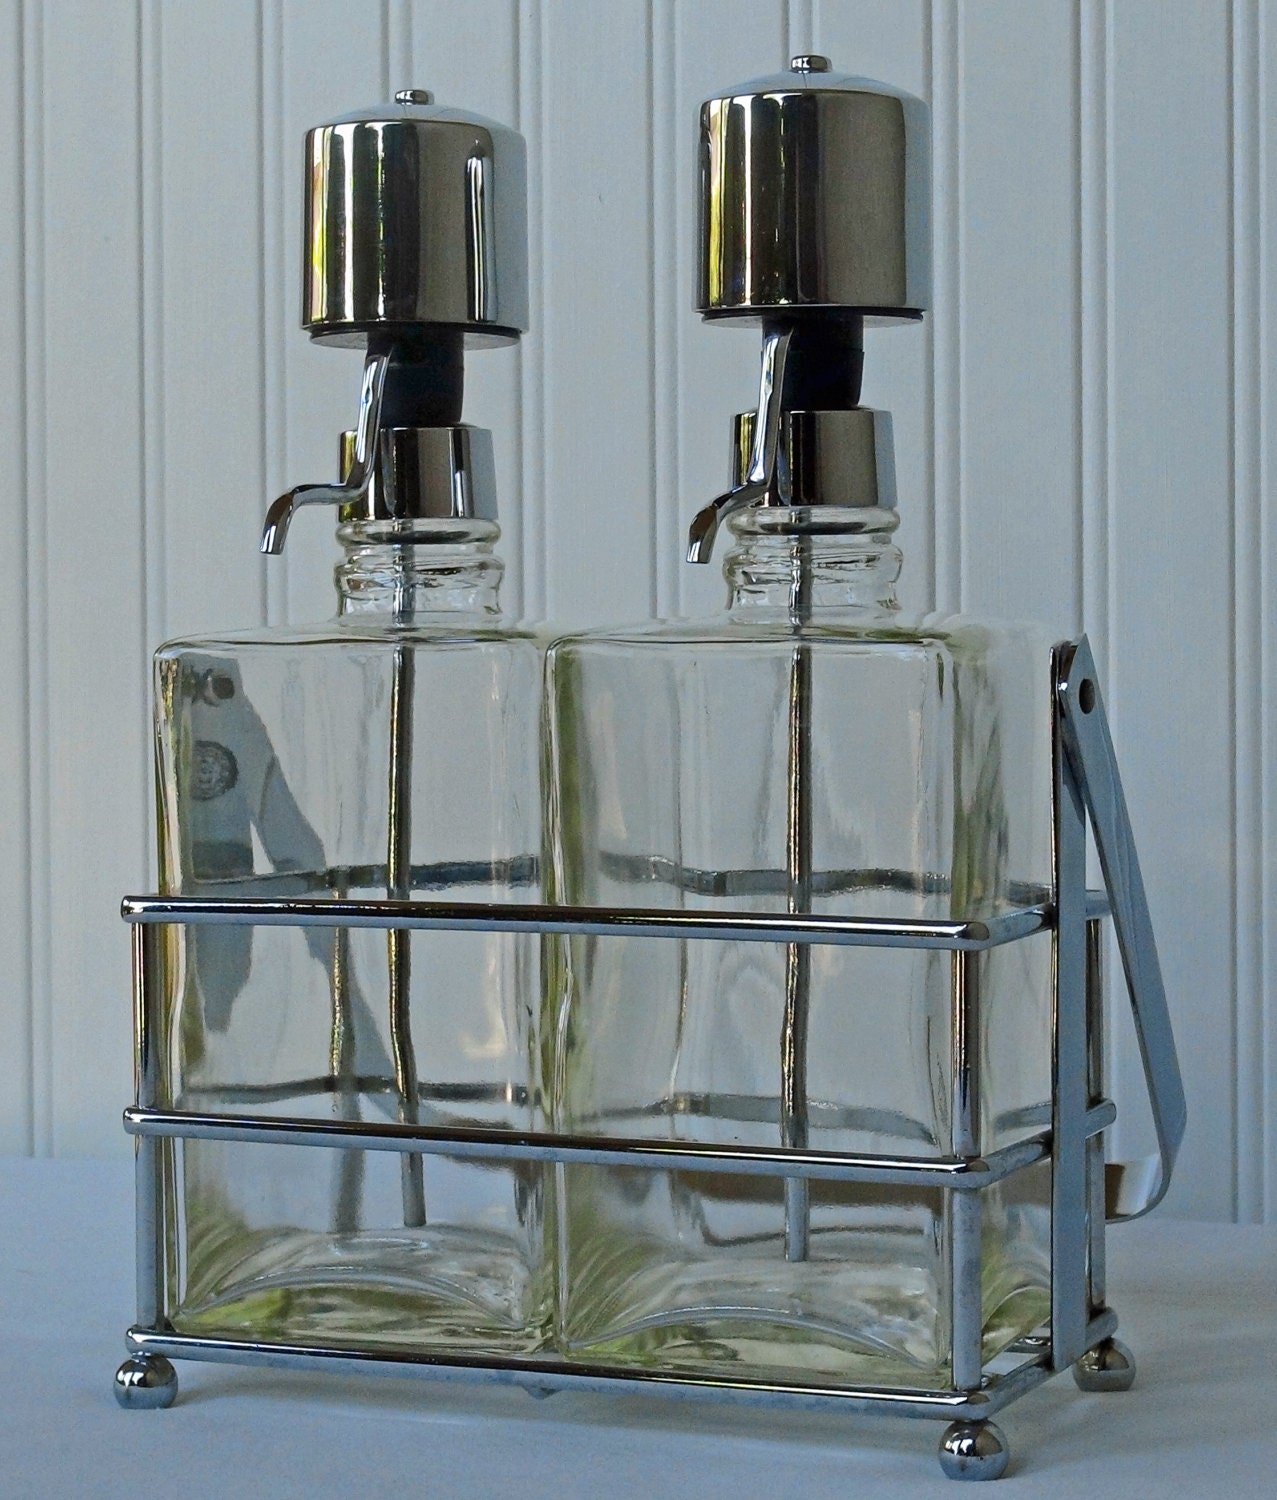 3 Piece Liquor Bottle Pump Decanter Set Chrome By Redouxchic